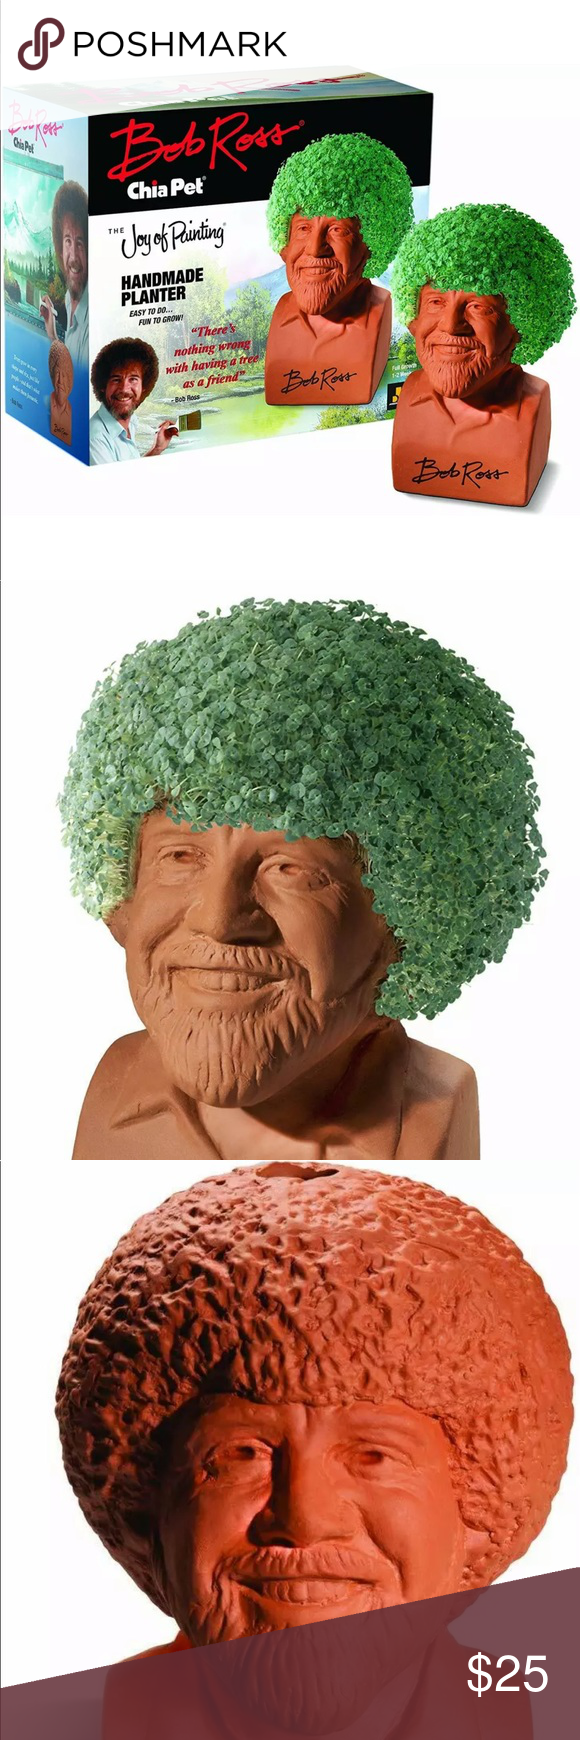 Chia Pet Bob Ross With Seed Pack Brand New In Box Chia Pet Seed Pack Handmade Planter